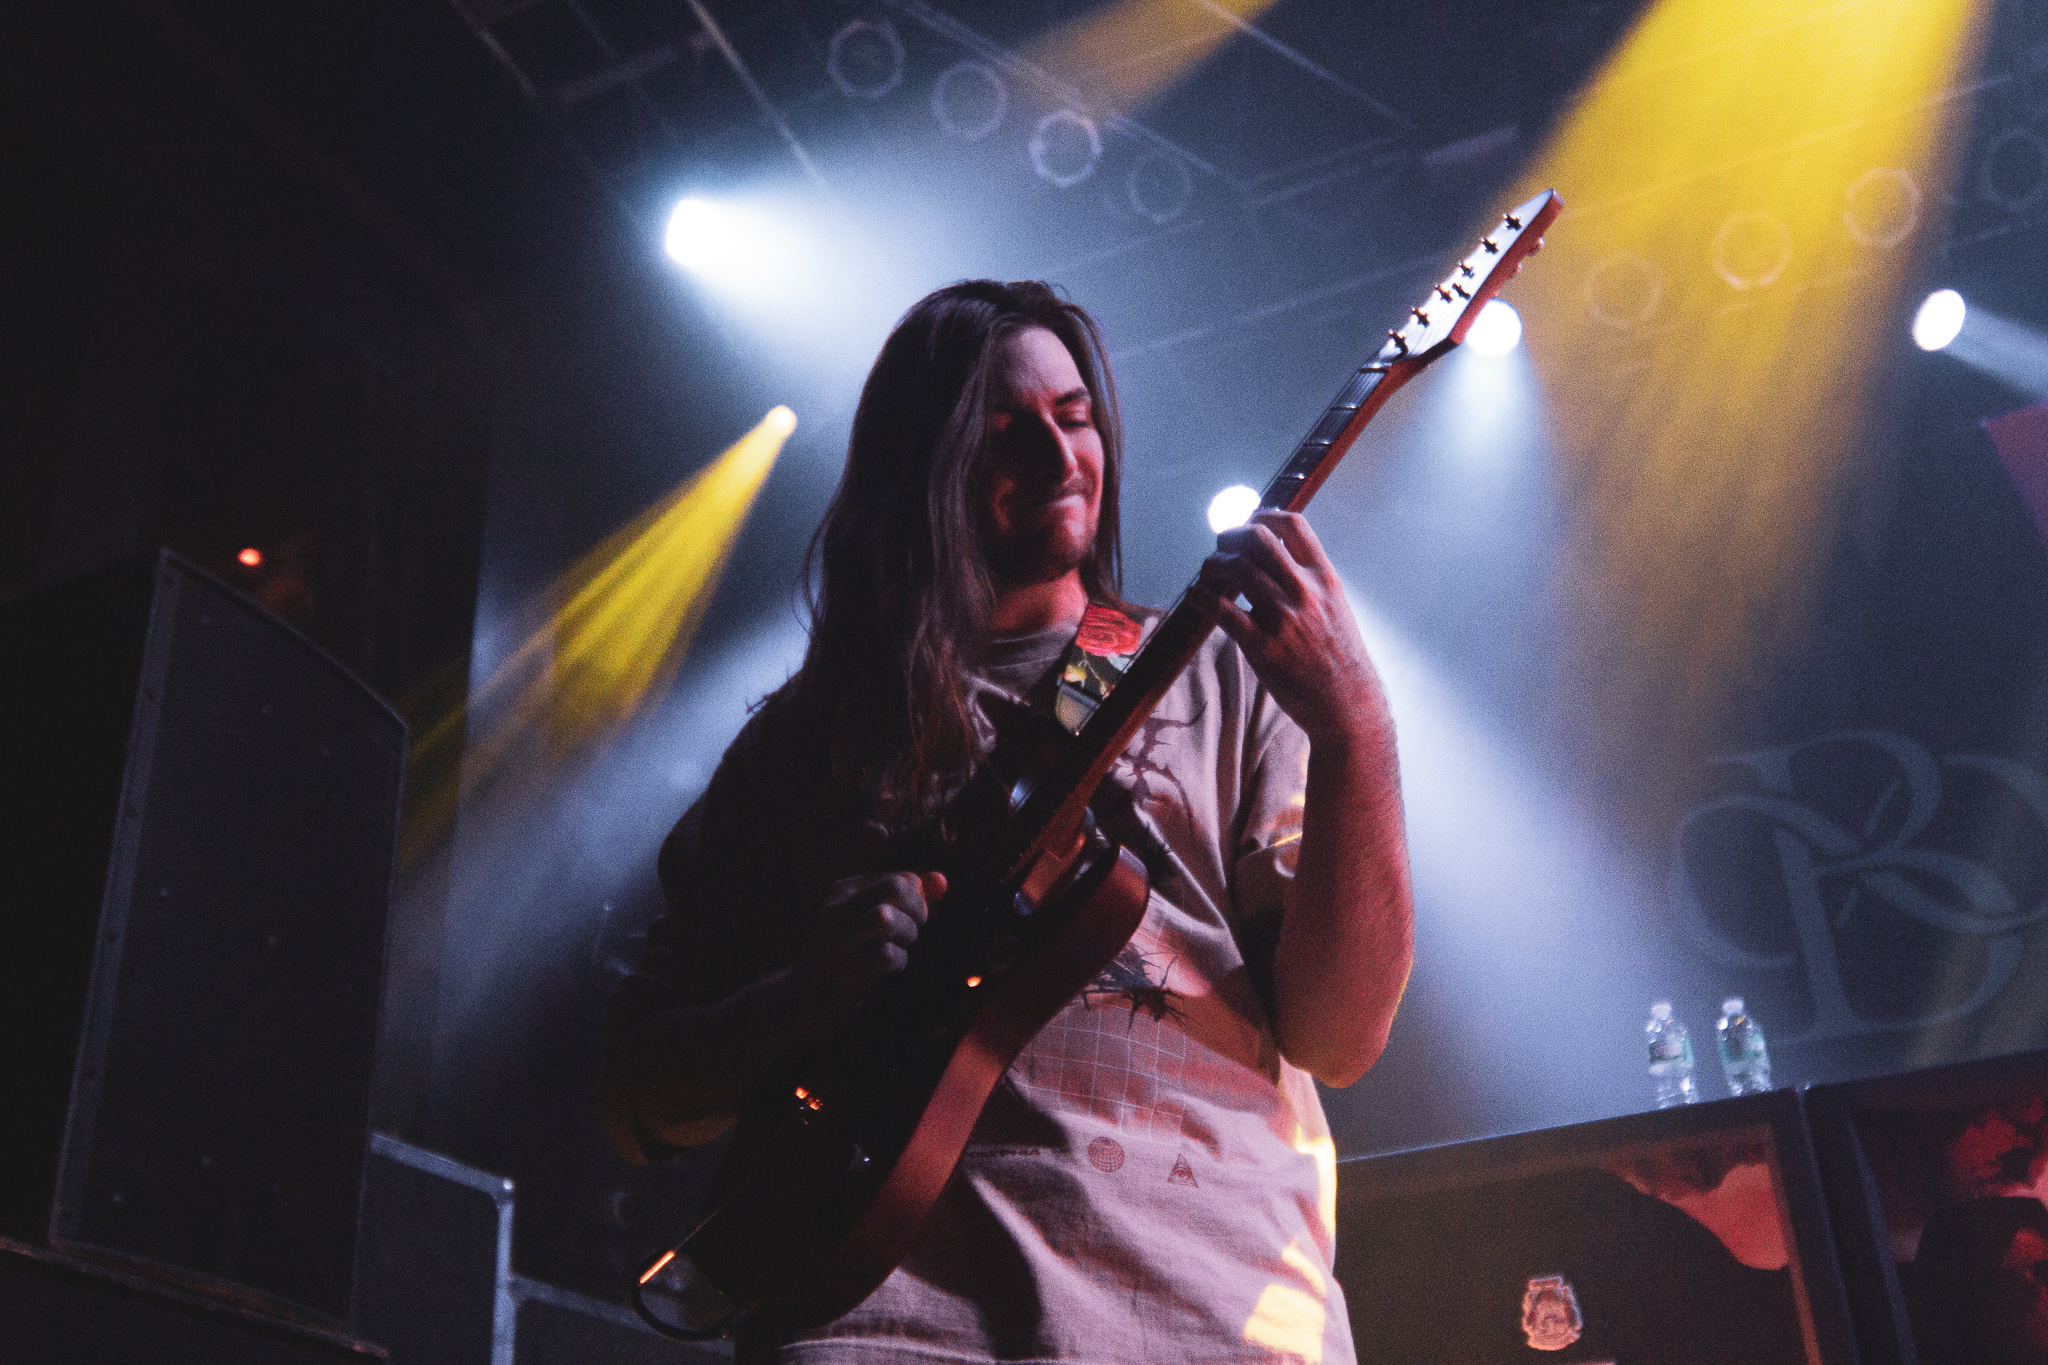 Scott LePage of Polyhia in Chicago, IL at The House of Blues on 12/01/2019. Photo: Abby Hamann